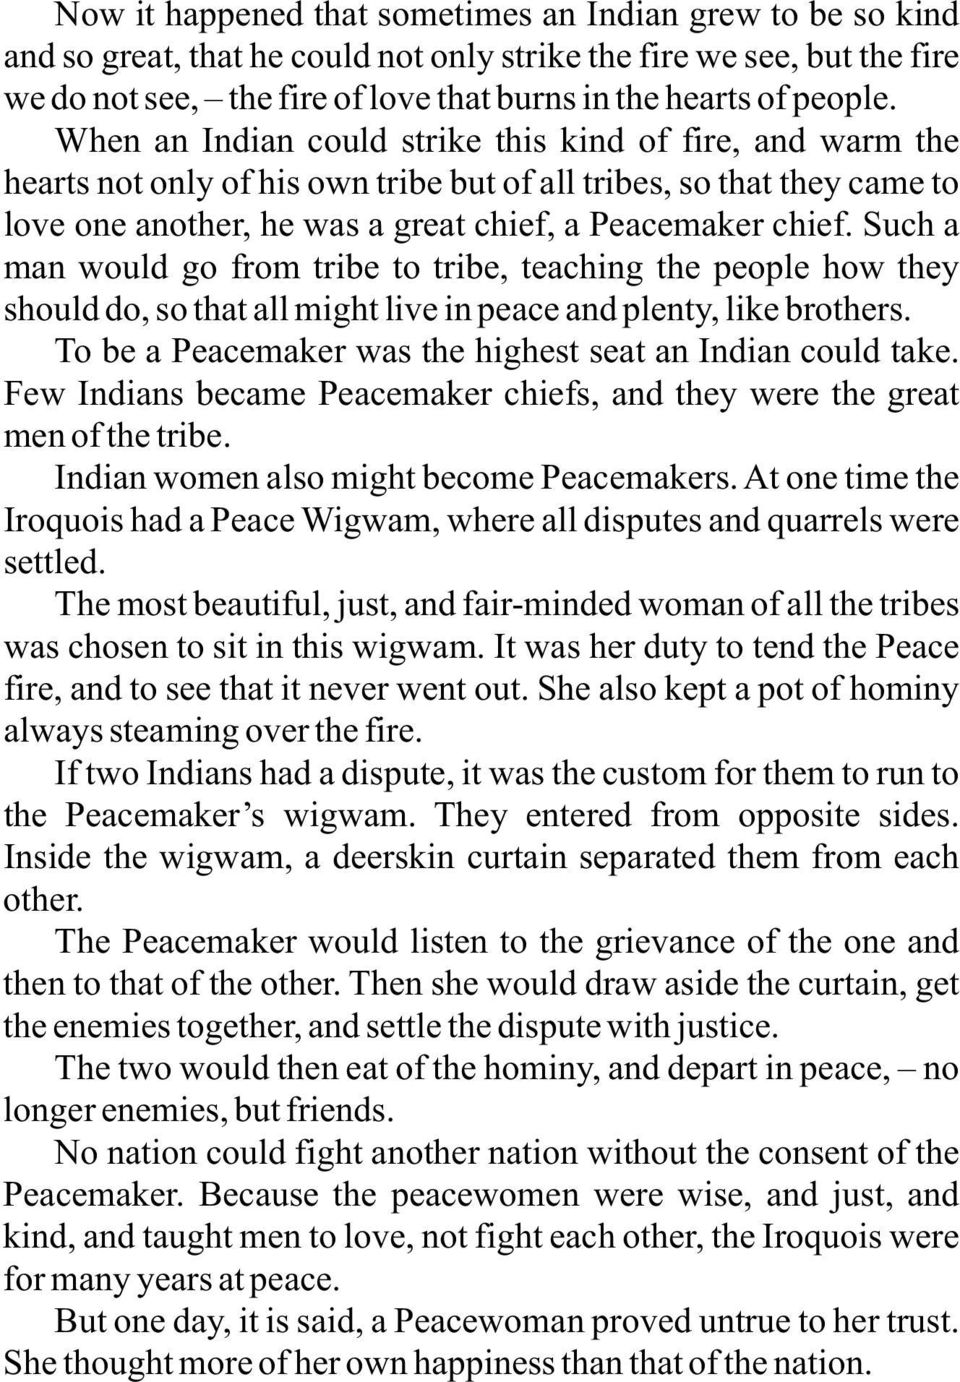 Such a man would go from tribe to tribe, teaching the people how they should do, so that all might live in peace and plenty, like brothers.